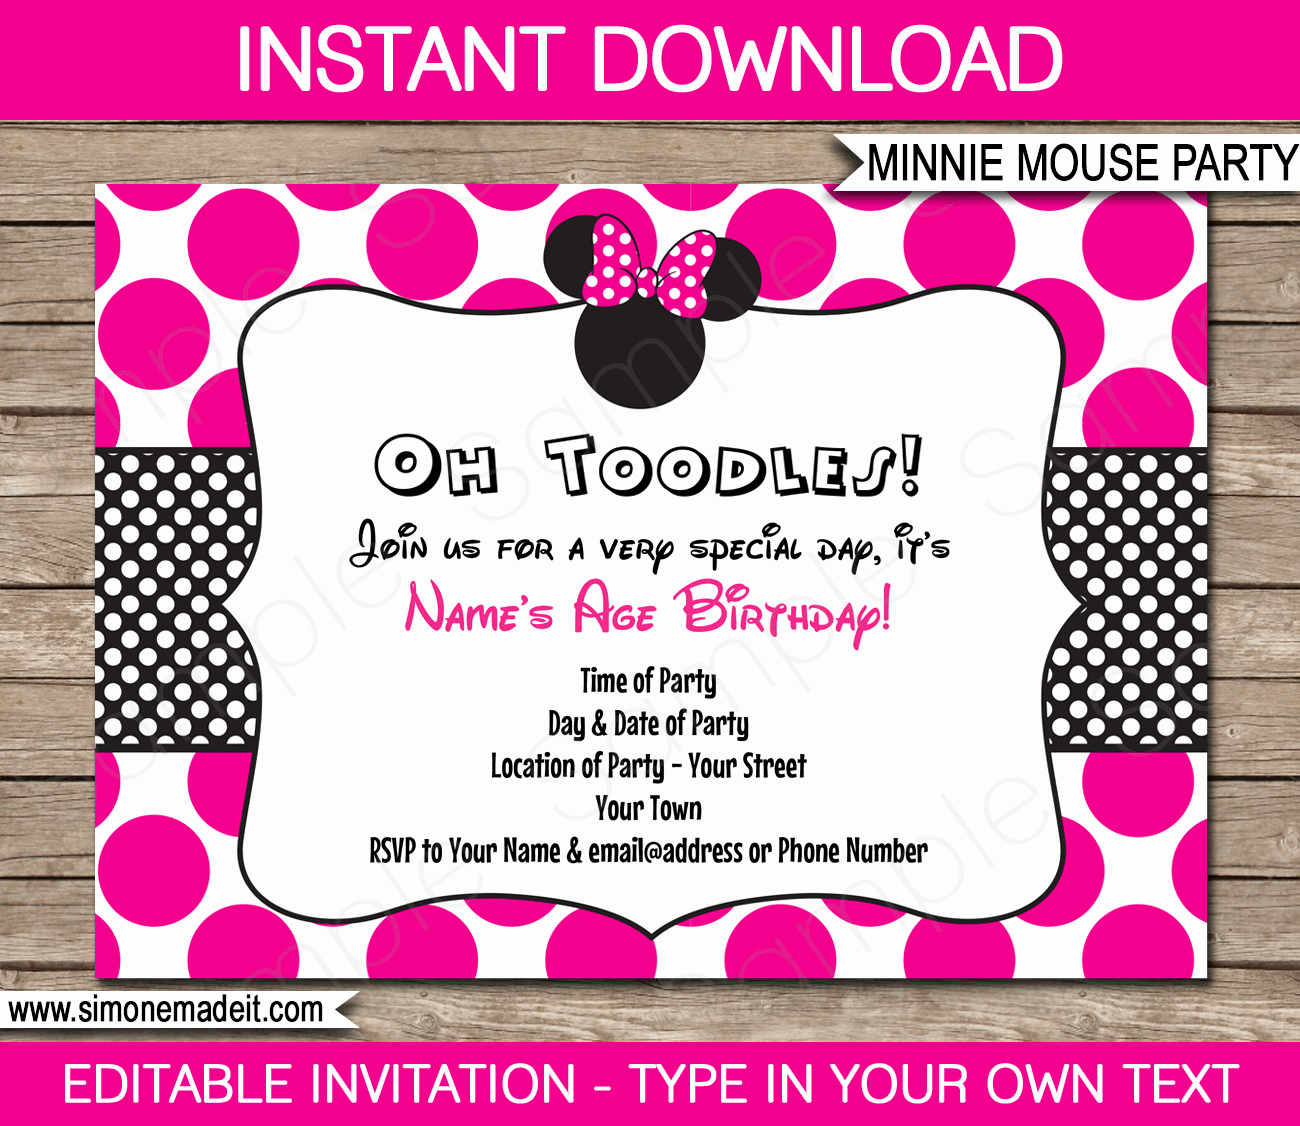 Minnie Mouse Invitation Template Best Of Minnie Mouse Party Invitations Template